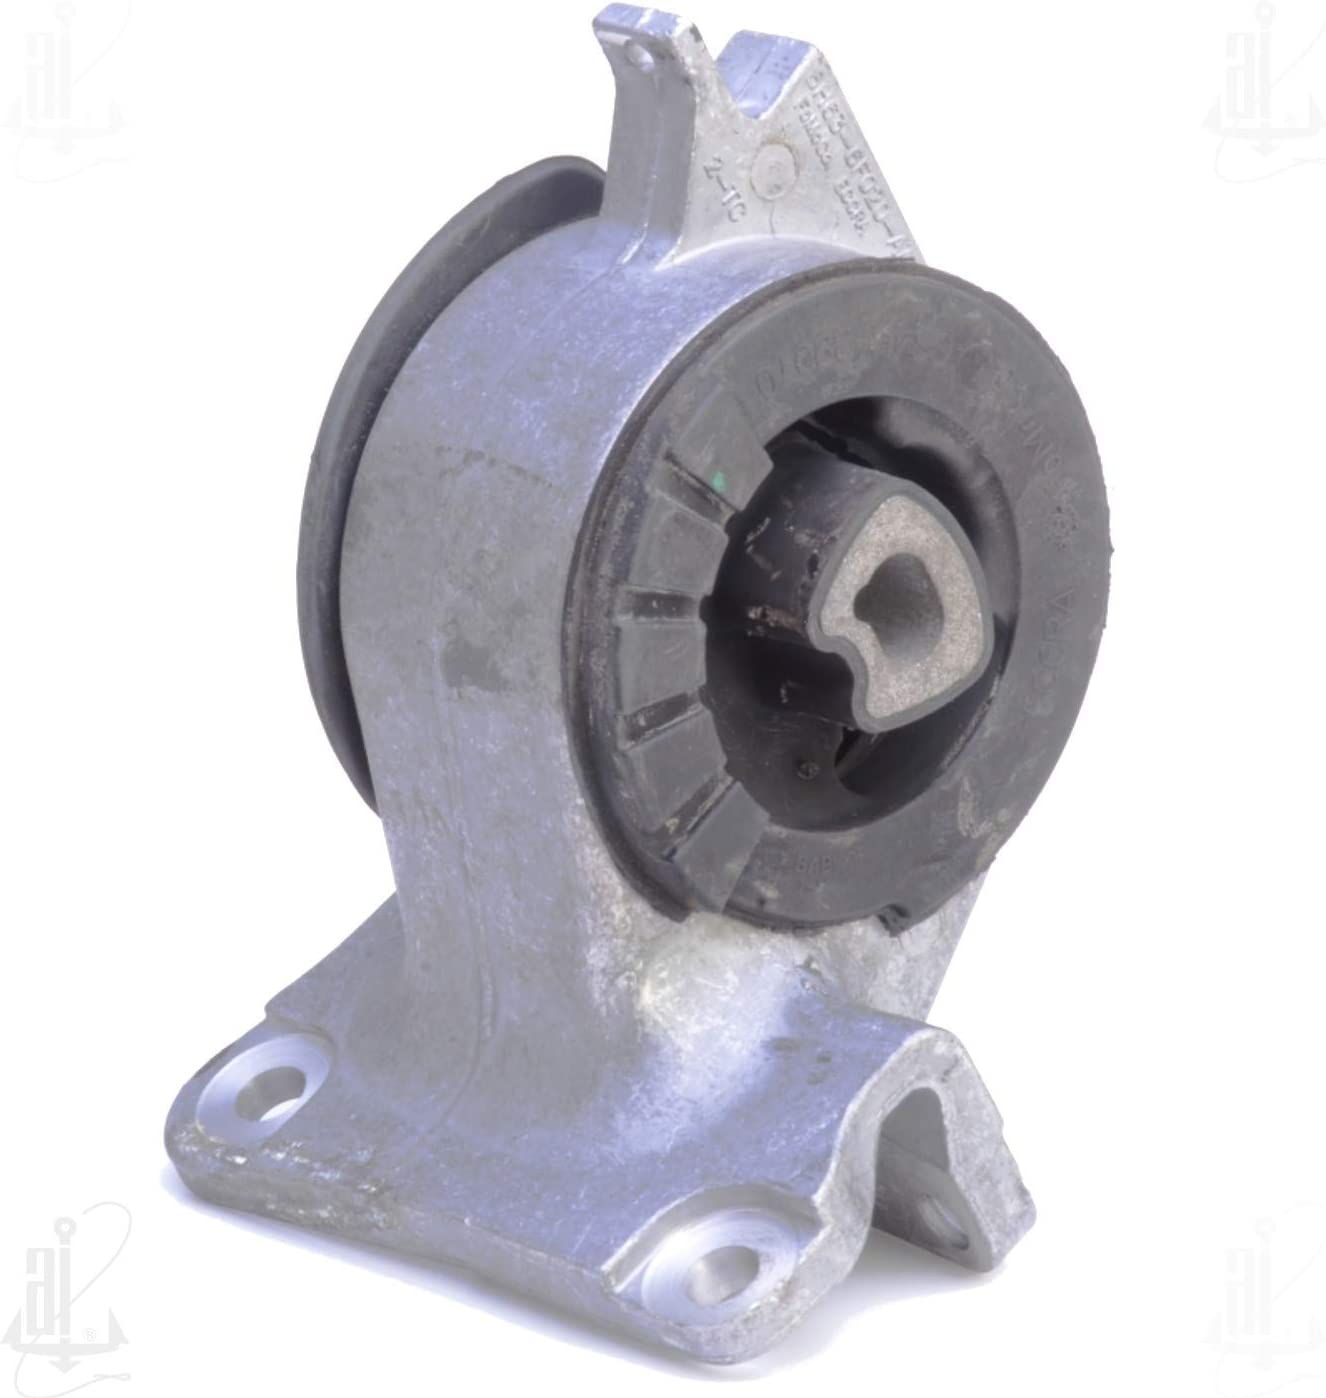 Anchor online shop 9831 Mount Transmission 67% OFF of fixed price